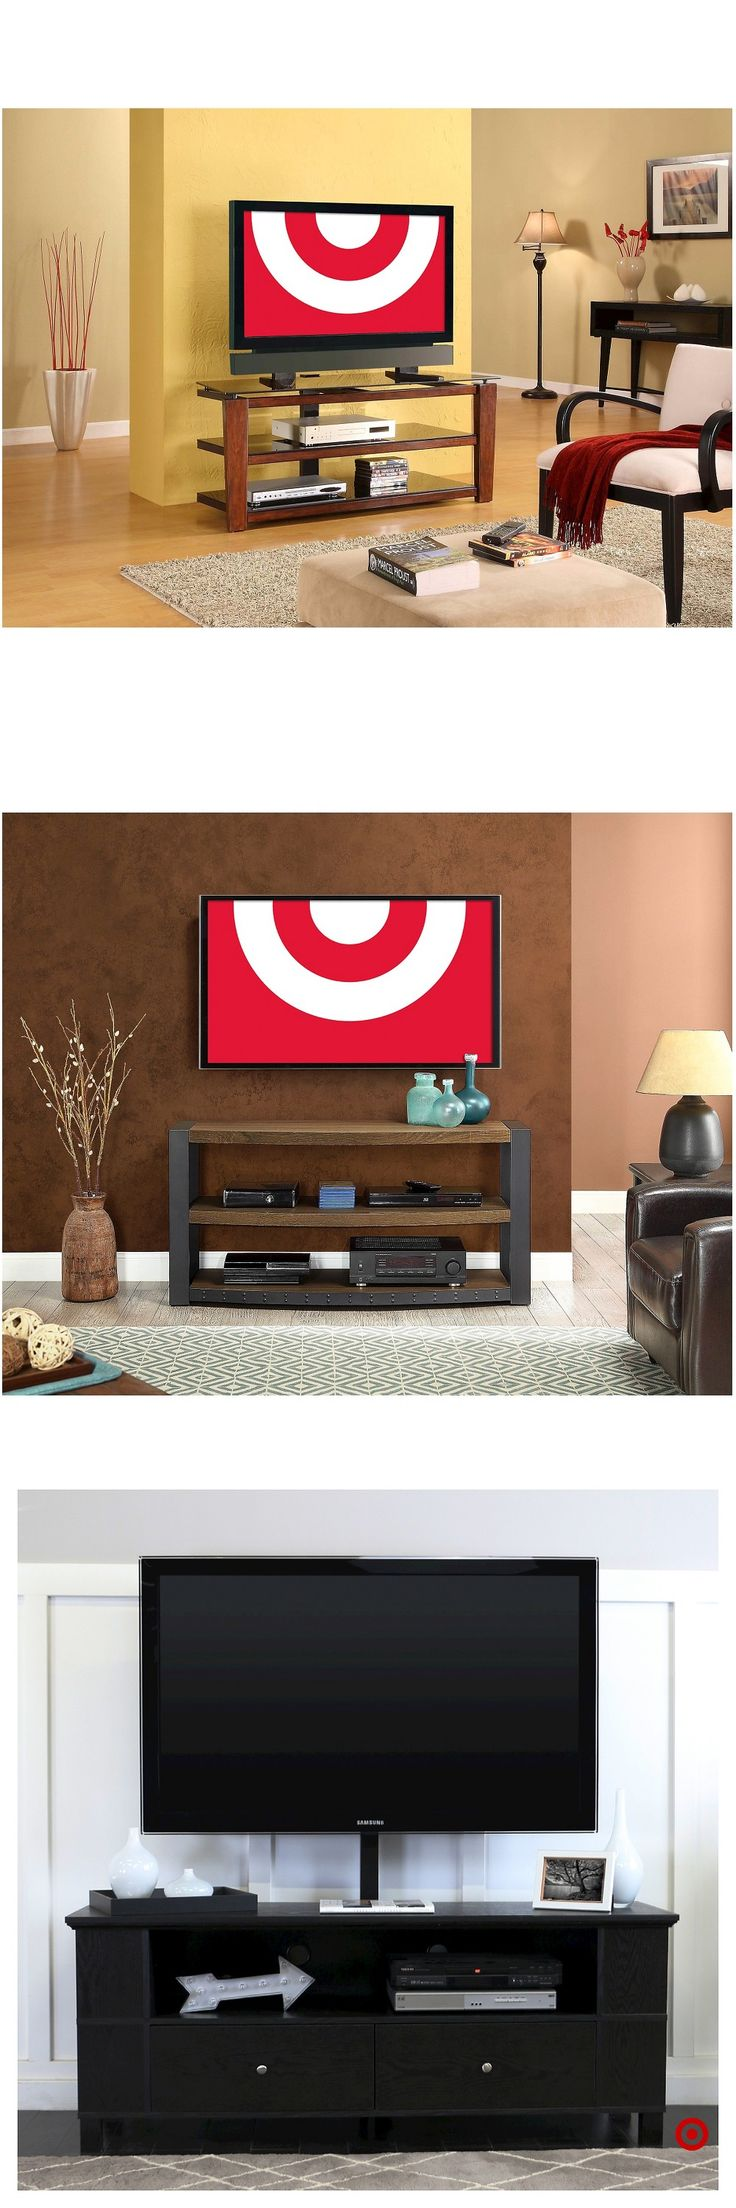 best 25 low tv stand ideas on pinterest long tv unit ikea tv stand and wooden tv units. Black Bedroom Furniture Sets. Home Design Ideas